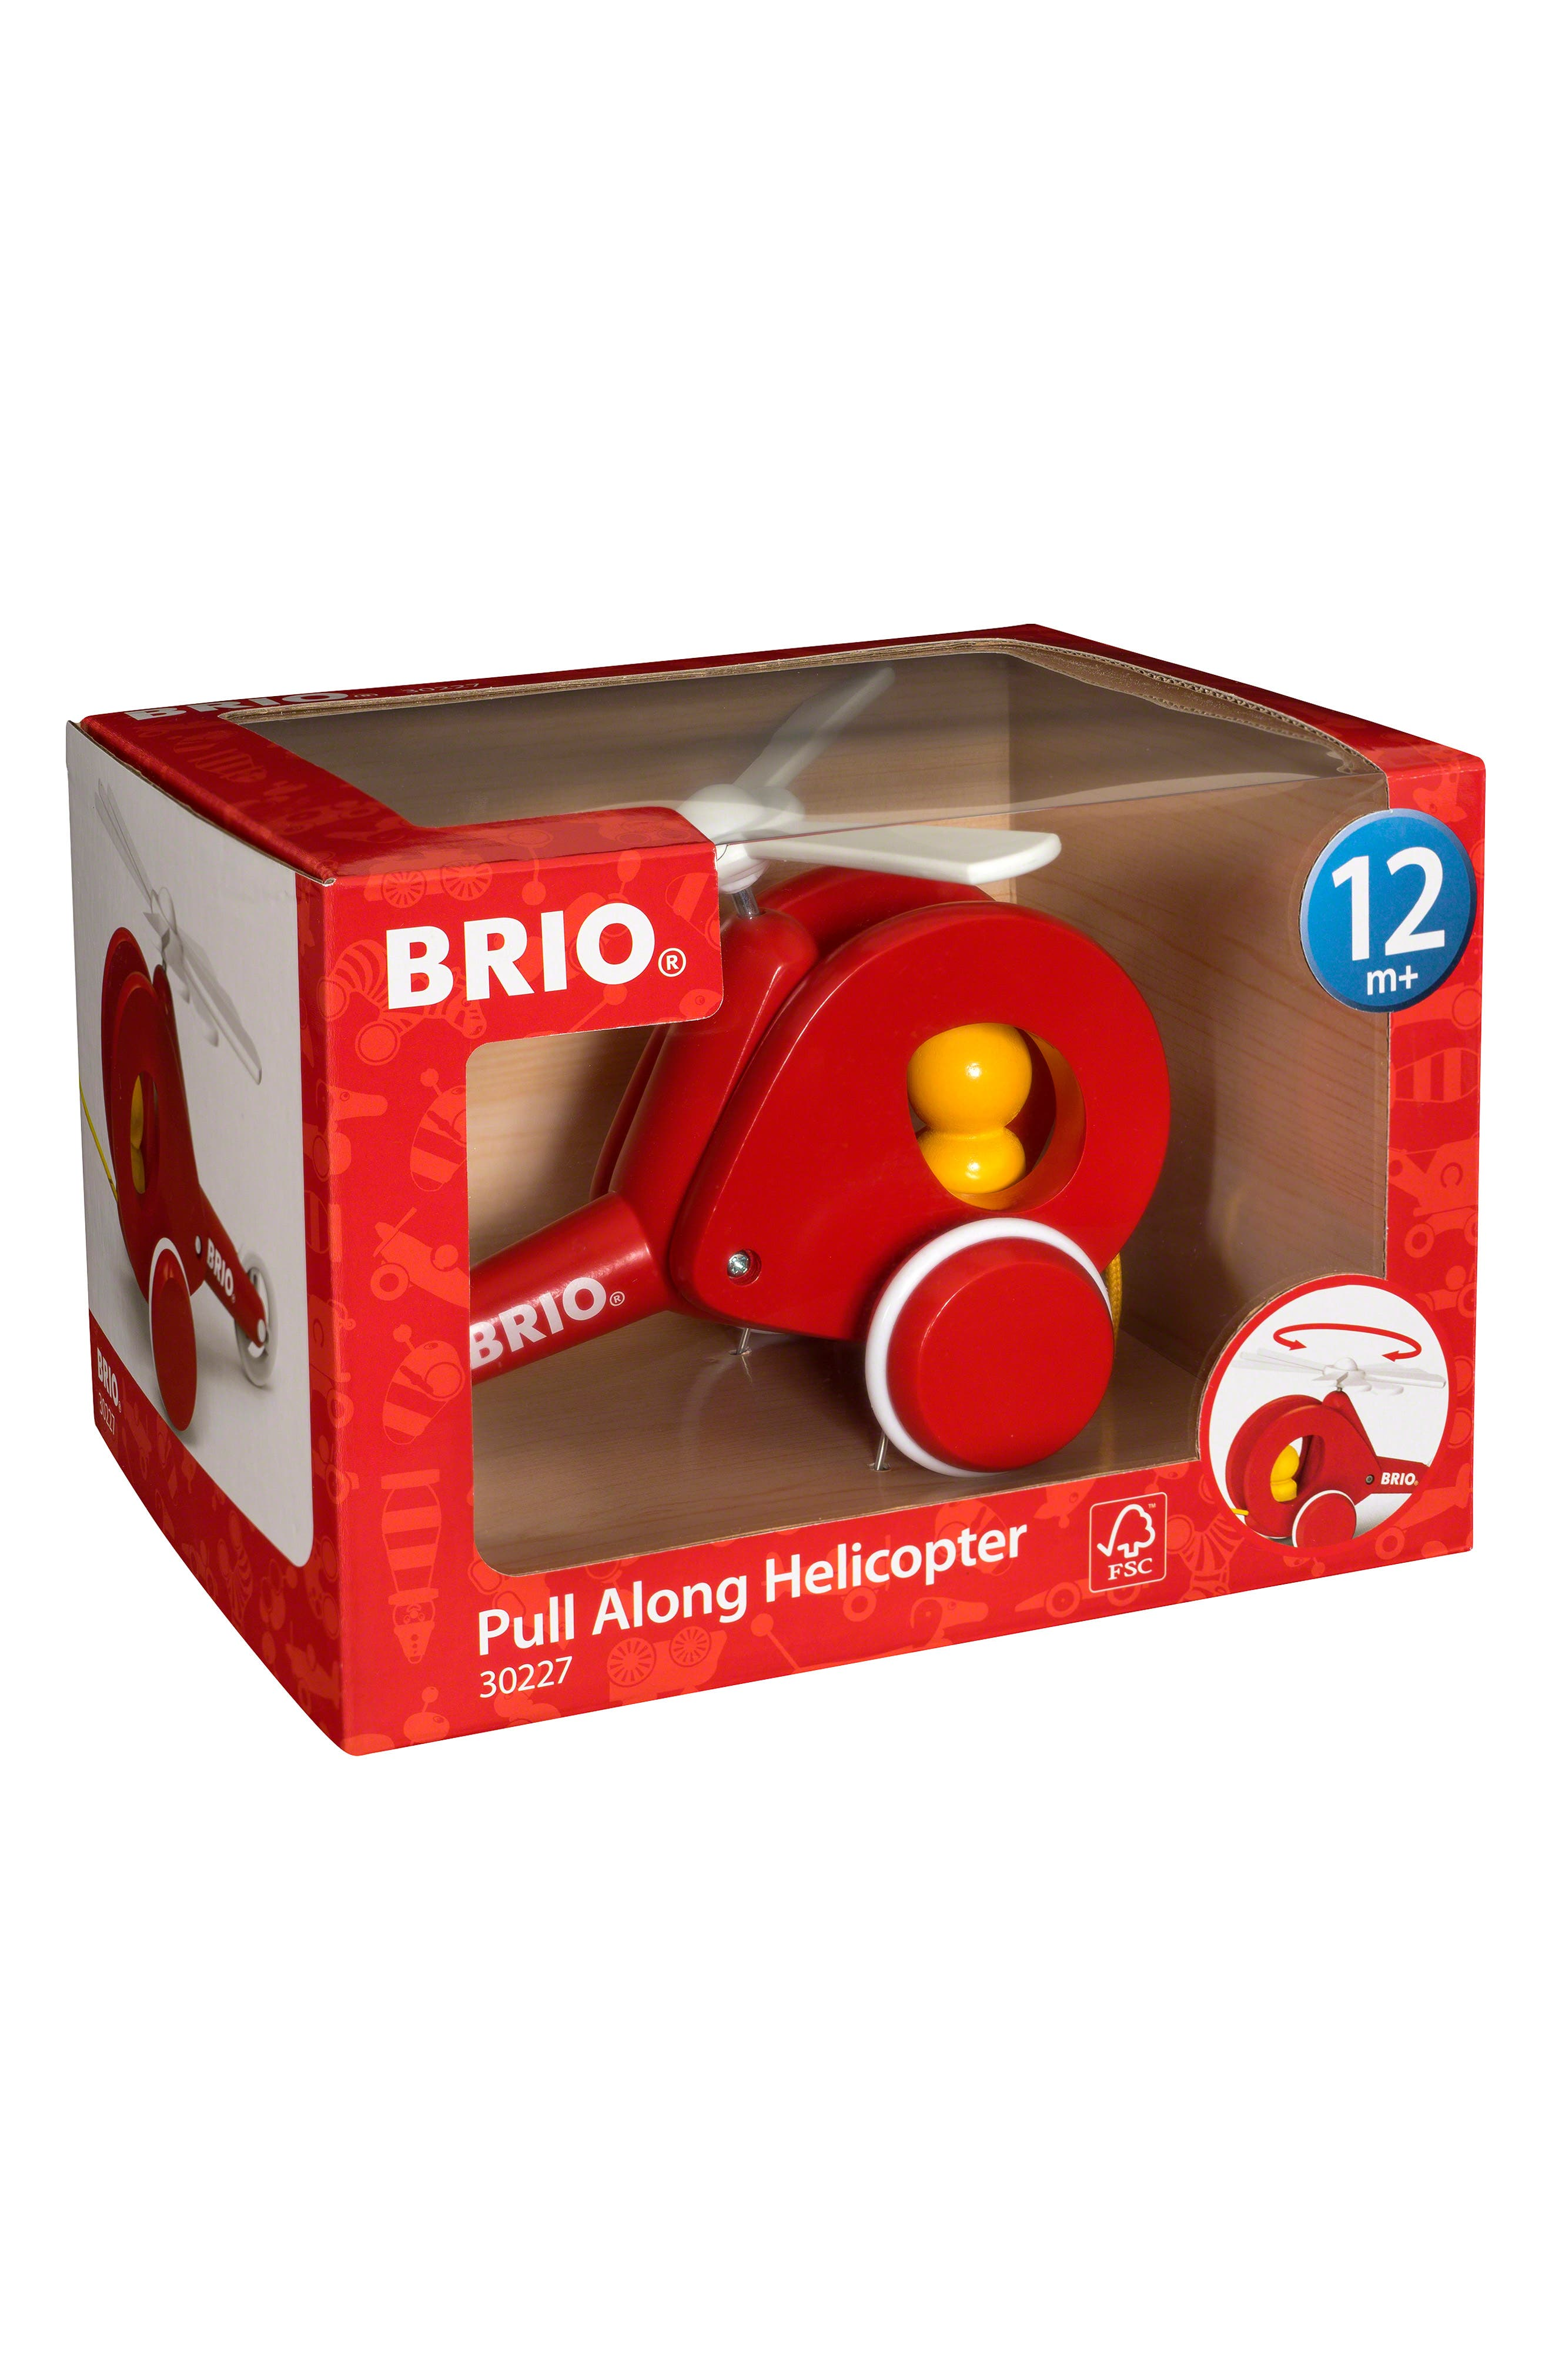 Toddler Boys Ravensburger Pull Along Toy Helicopter